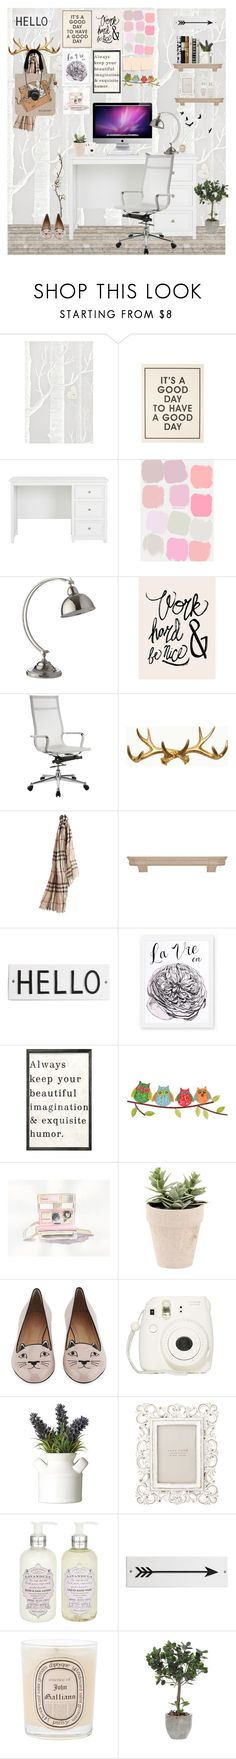 """Minimal Desk"" by bittersweet89 ❤ liked on Polyvore featuring interior, interiors, interior design, home, home decor, interior decorating, Cole & Son, Heathfield & Co., DMI and Burberry"